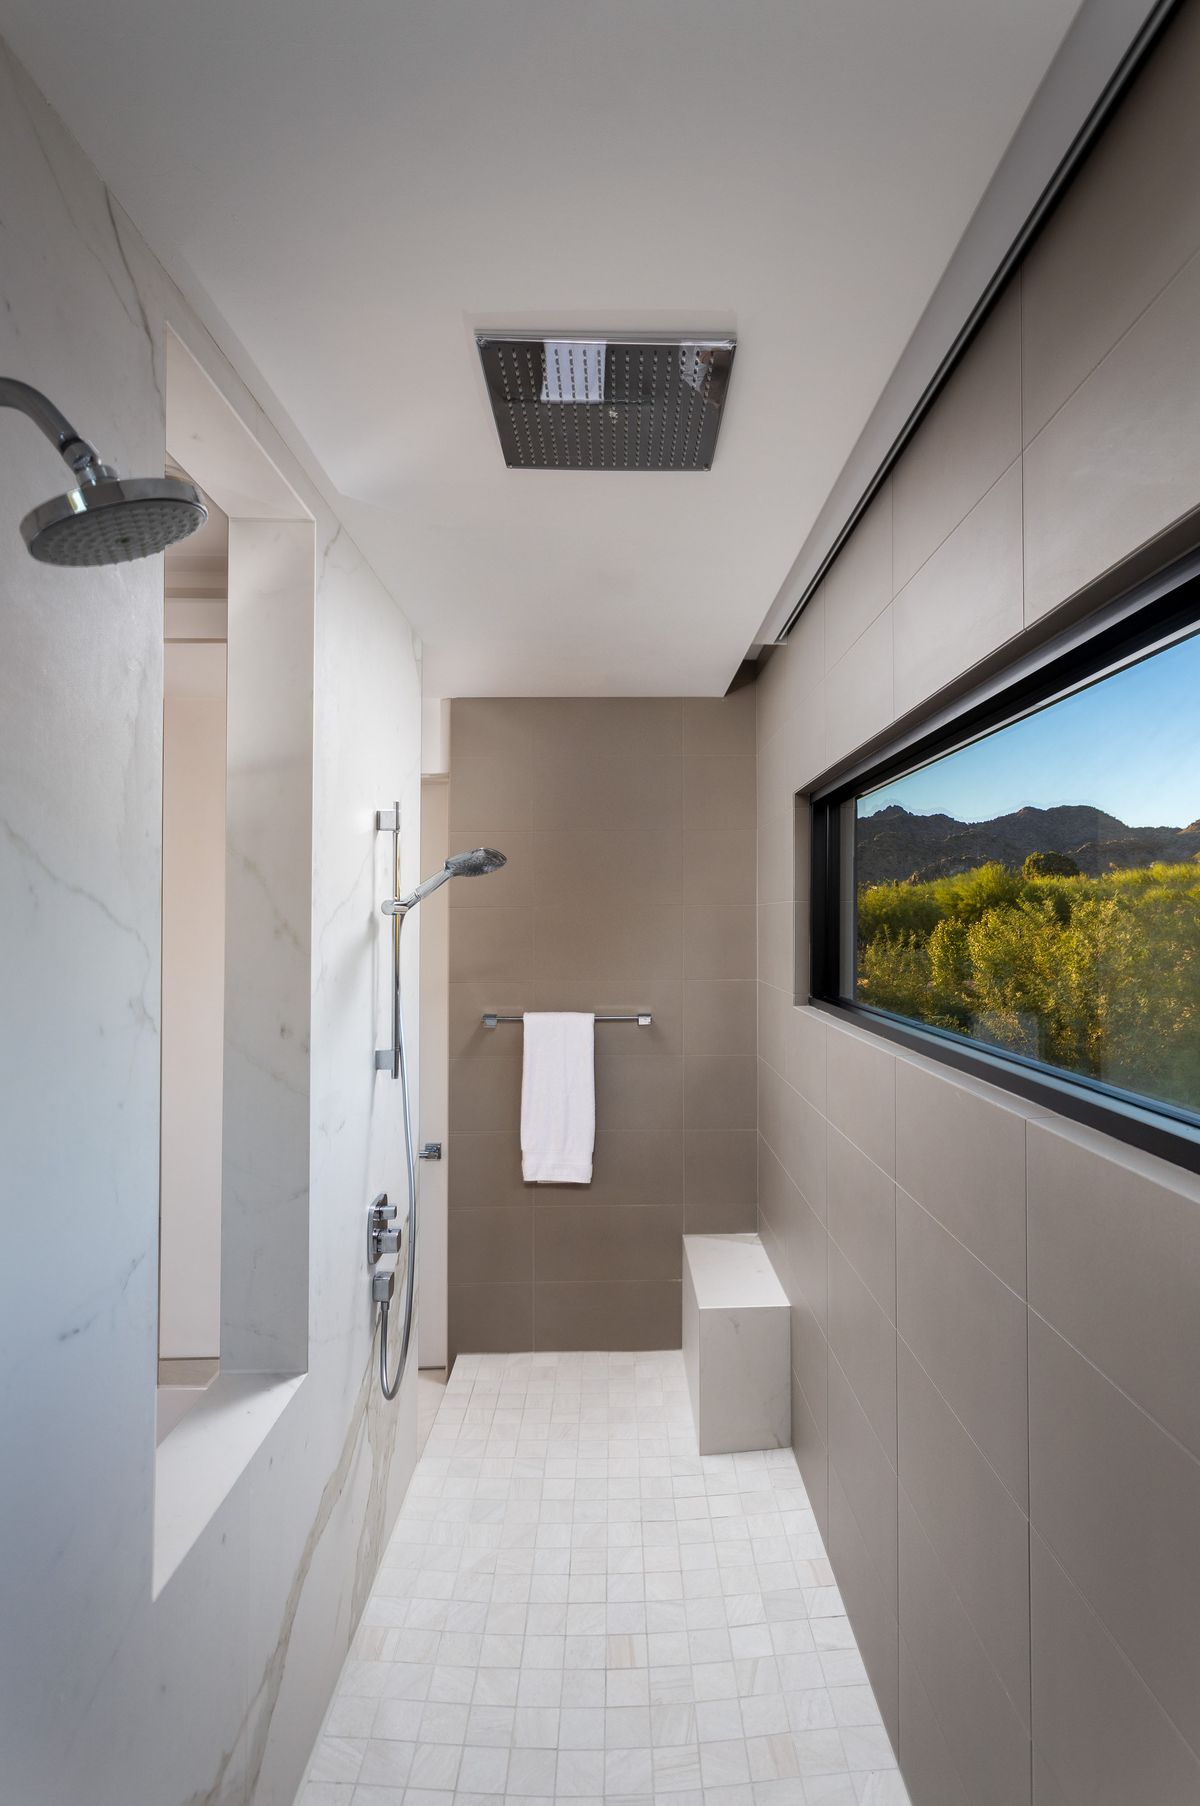 A bathroom with a shower and rectangular window with desert landscape views.